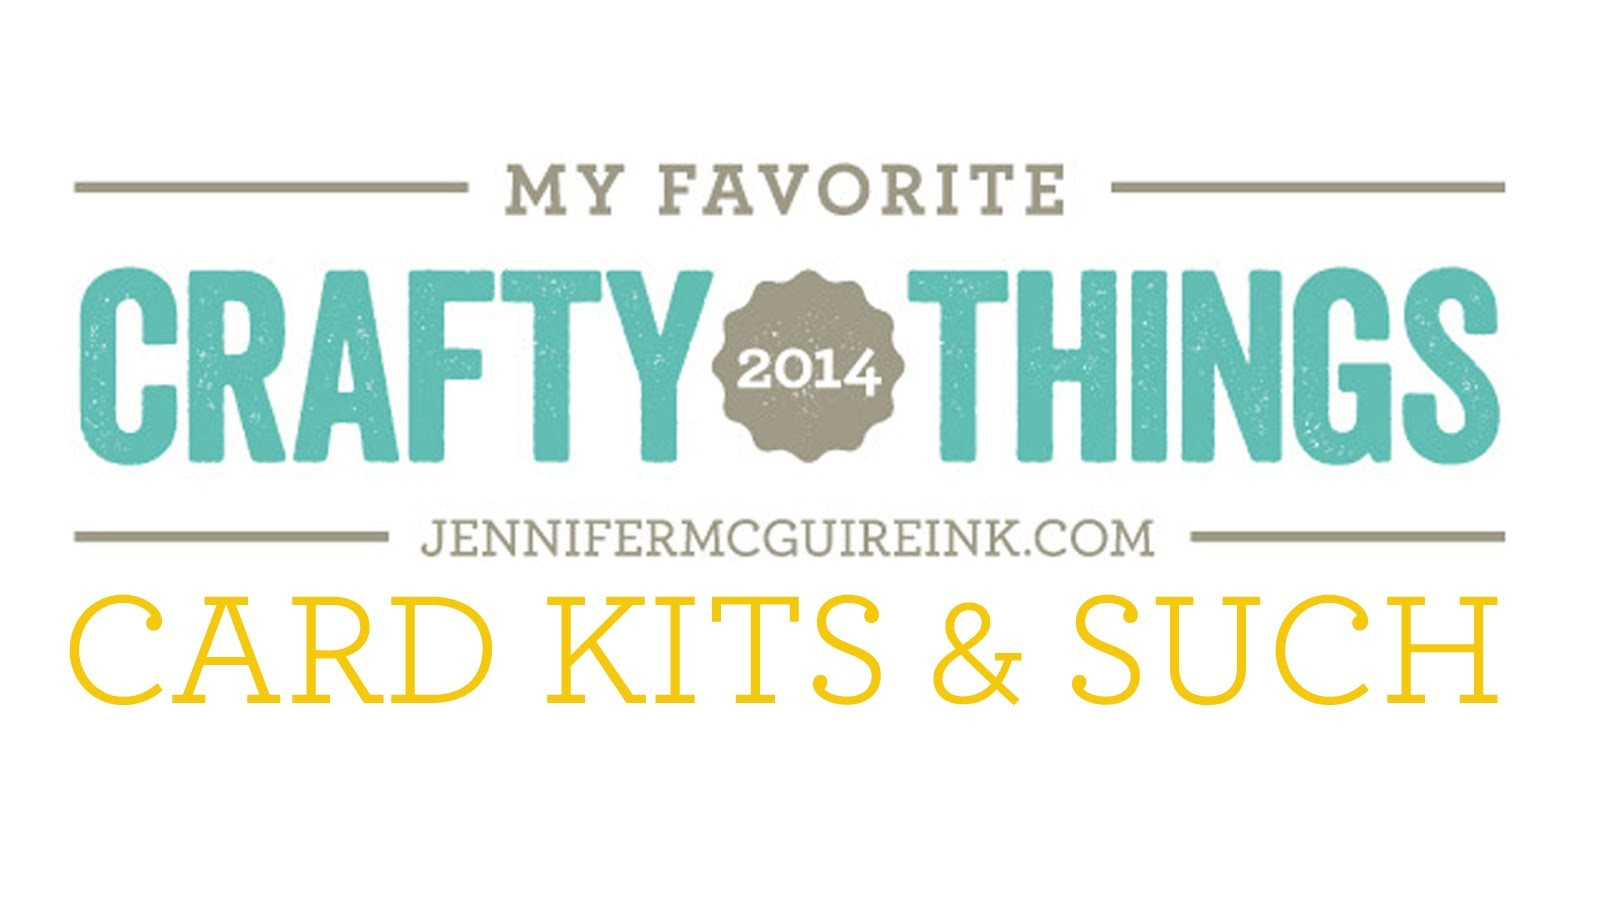 My Favorite Crafty Things 2014 - Kits, Planners and Accessories